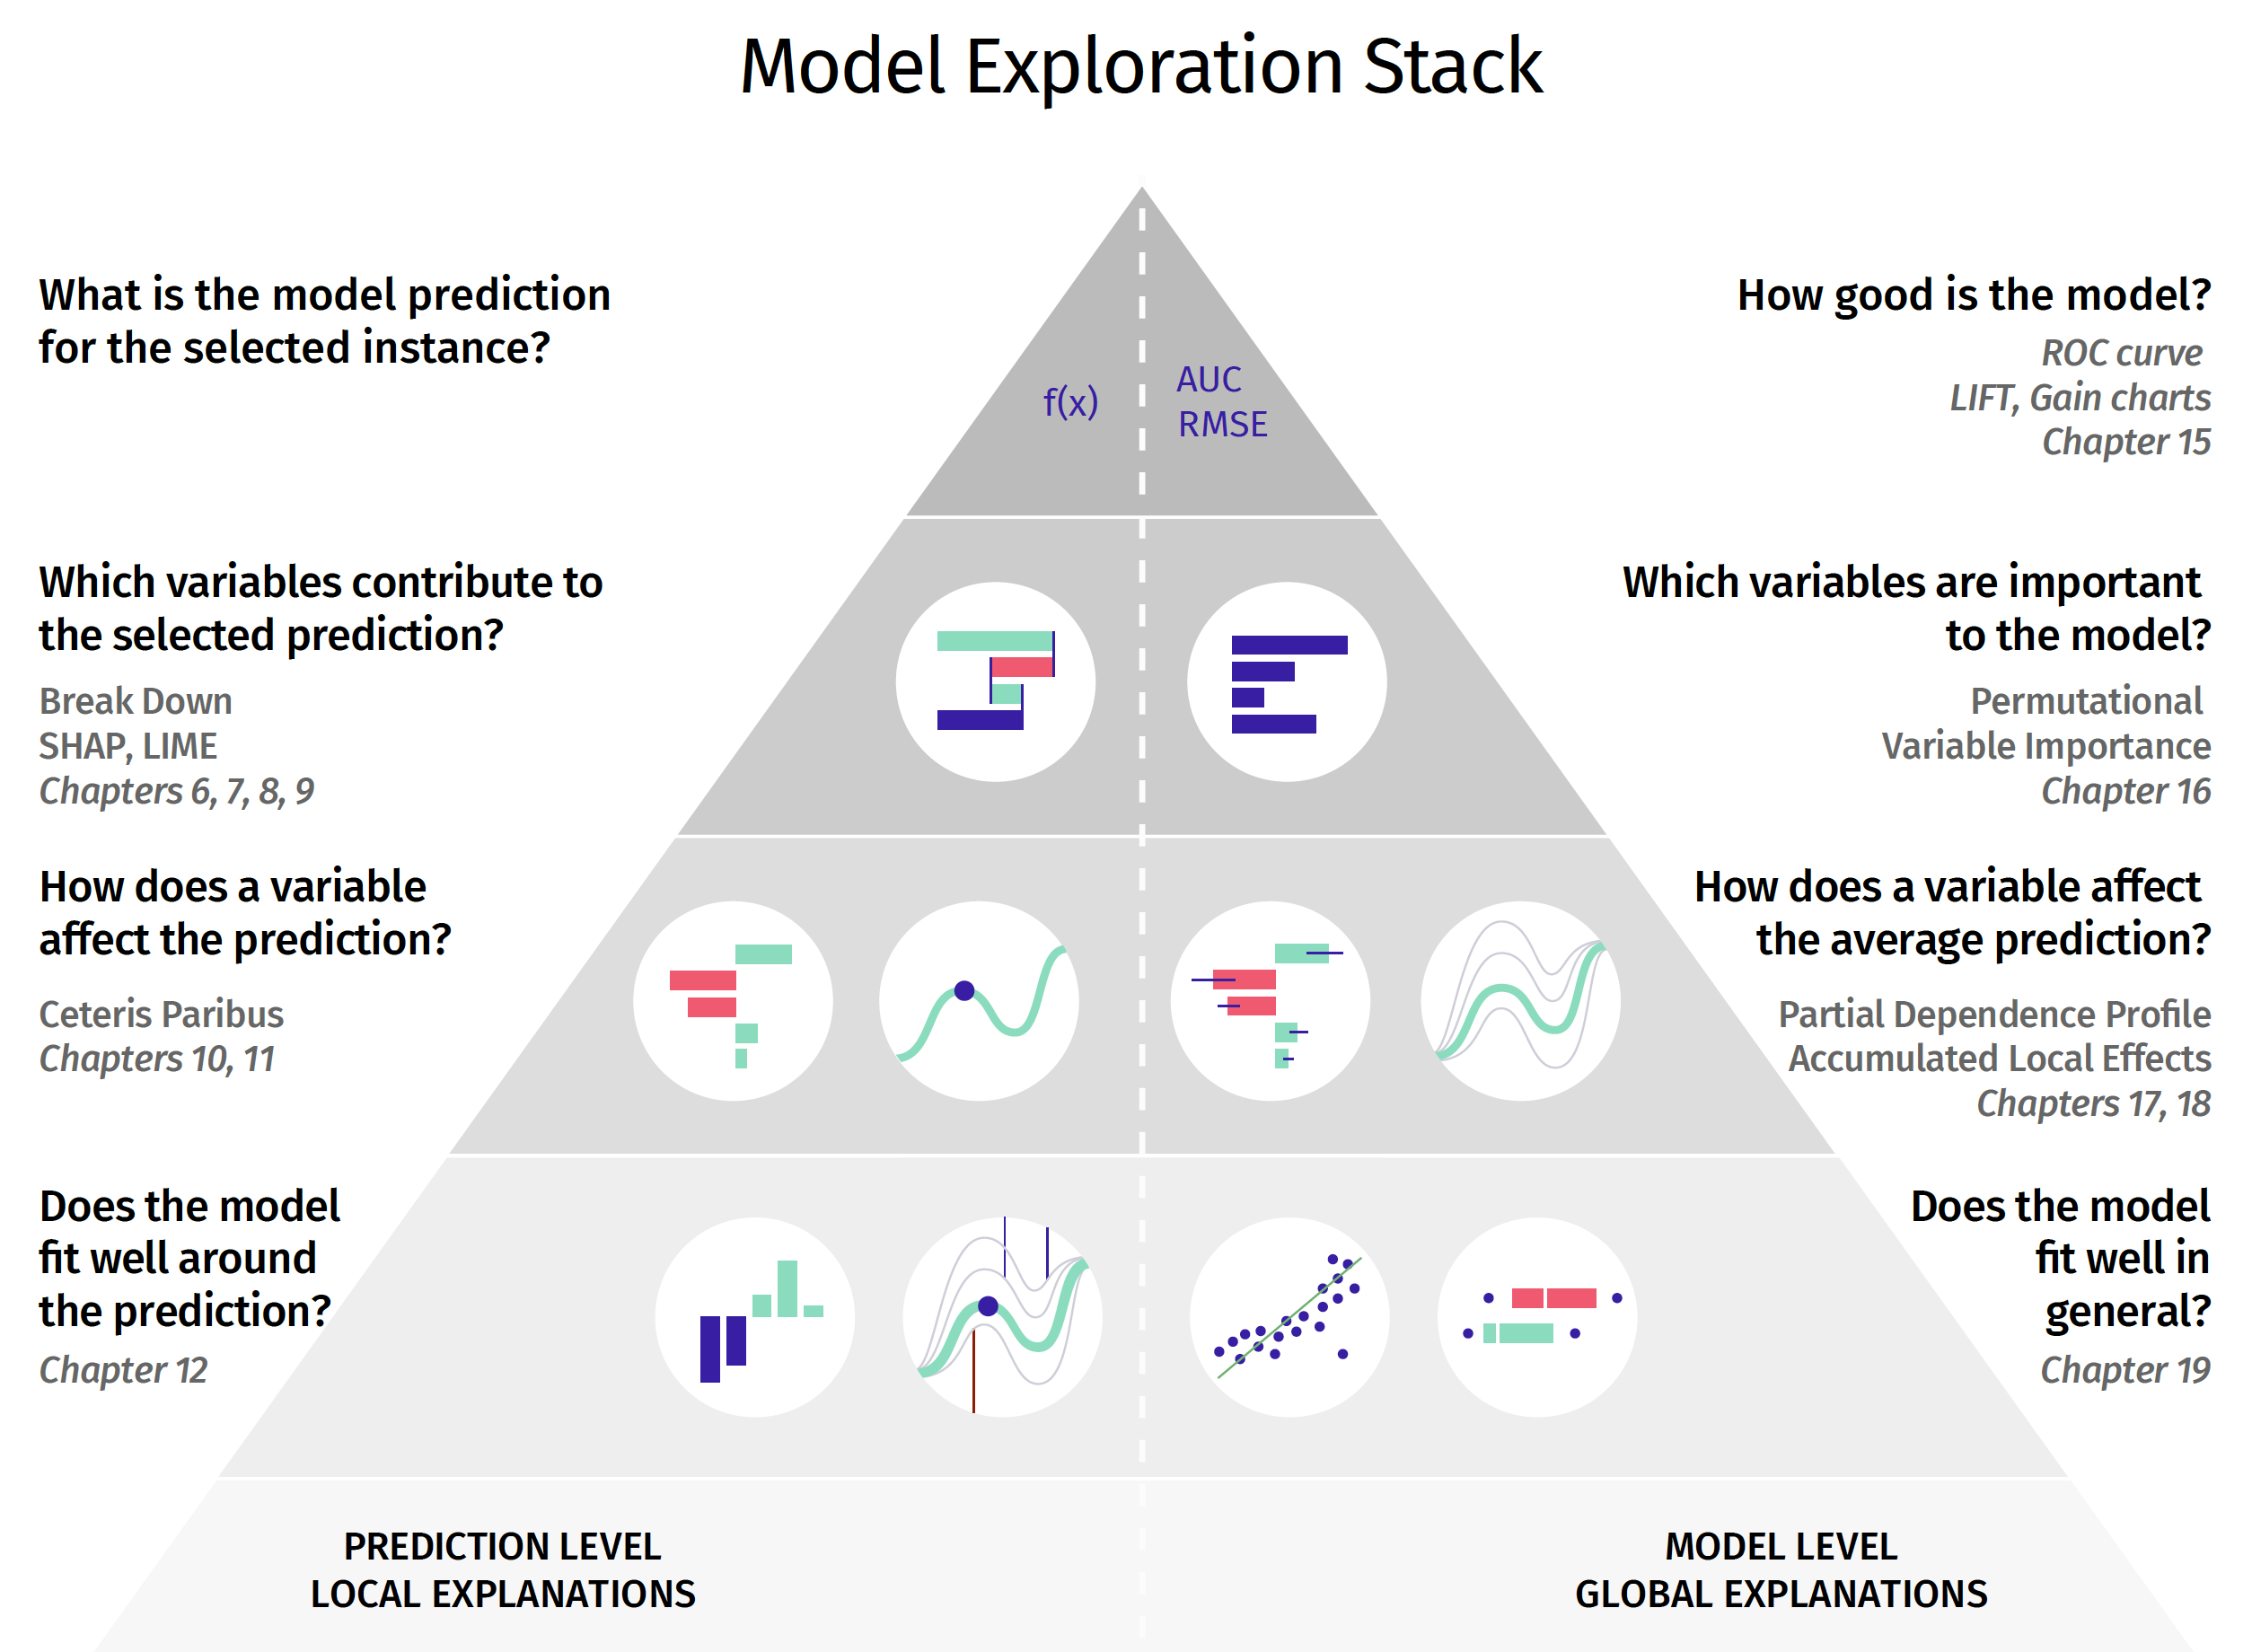 Model exploration methods presented in the book. The left-hand side (corresponding to the second part of the book) focuses on instance-level exploration, while the right-hand side (corresponding to the third part of the book) focuses on dataset-level exploration. Consecutive layers of the stack are linked with a deeper level of model exploration. The layers are linked with laws of model exploration introduced in Section 1.2.